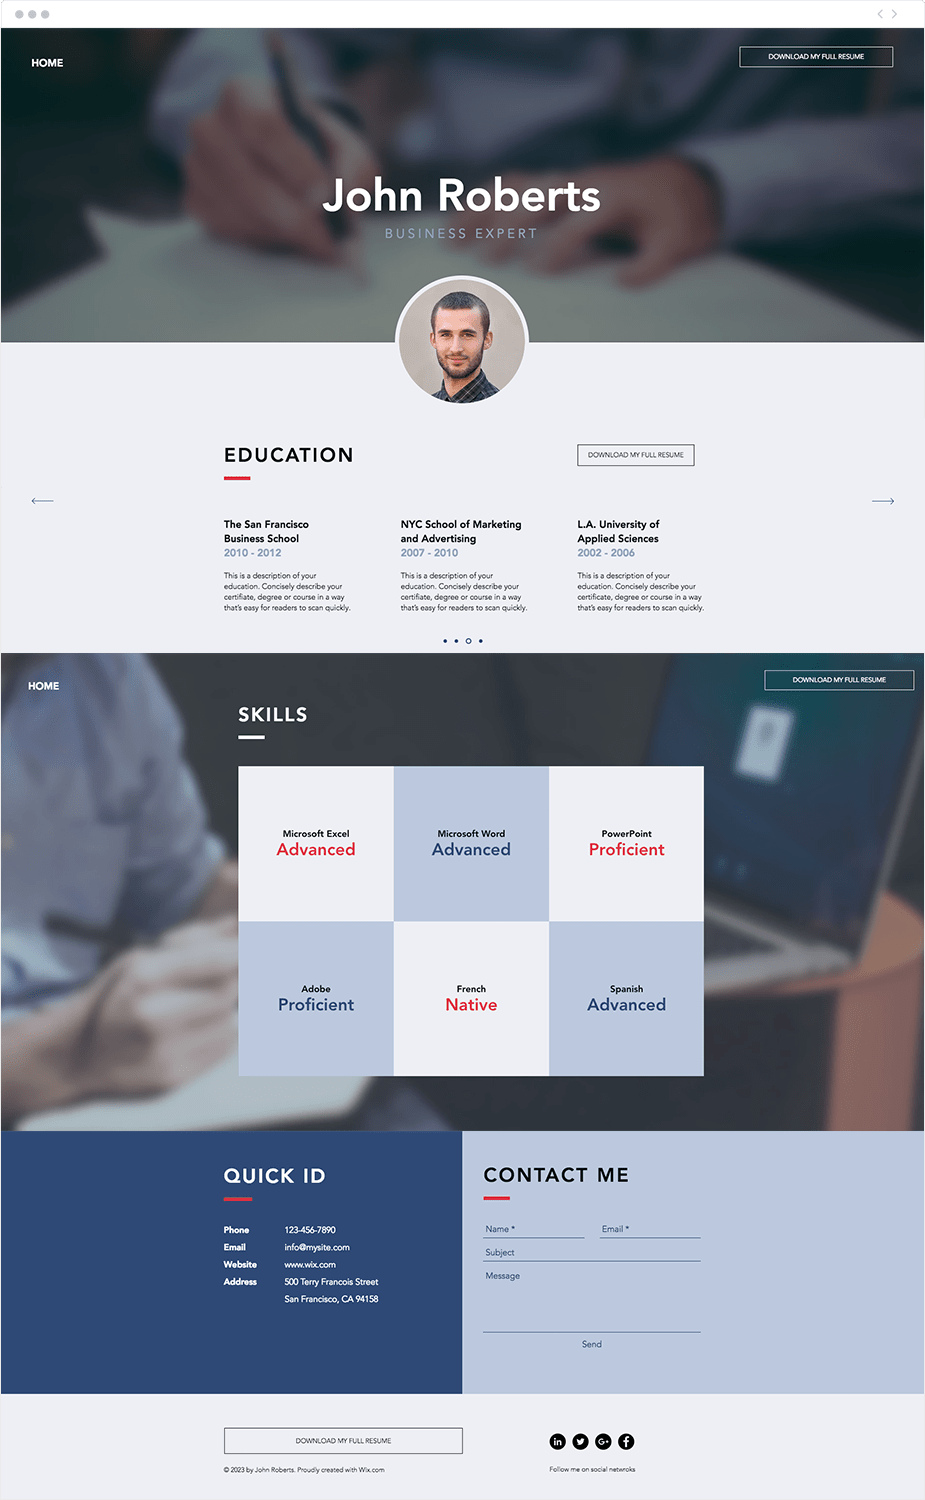 Resume Website Fascinating 48 Polished Resume Website Templates For All Professionals